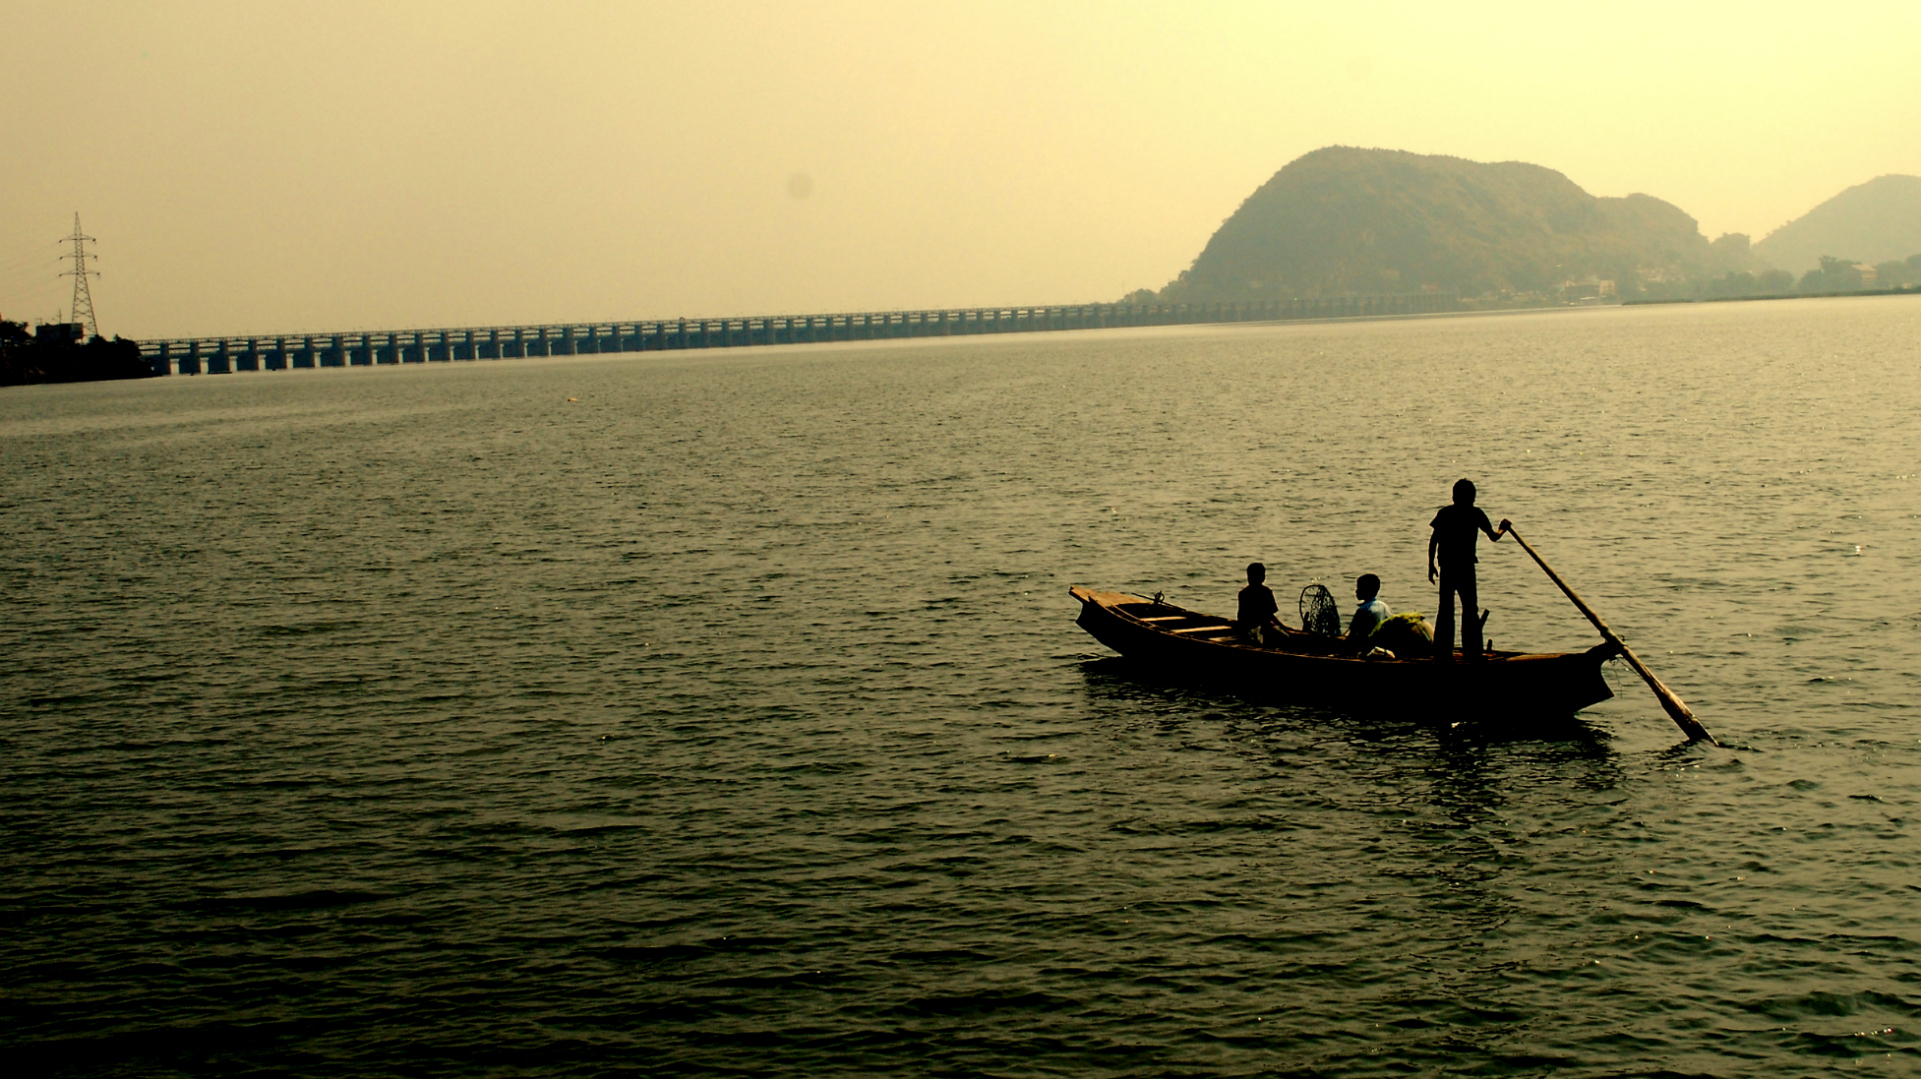 Krishna river near Vijayawada. Photo - Wikimedia Commons